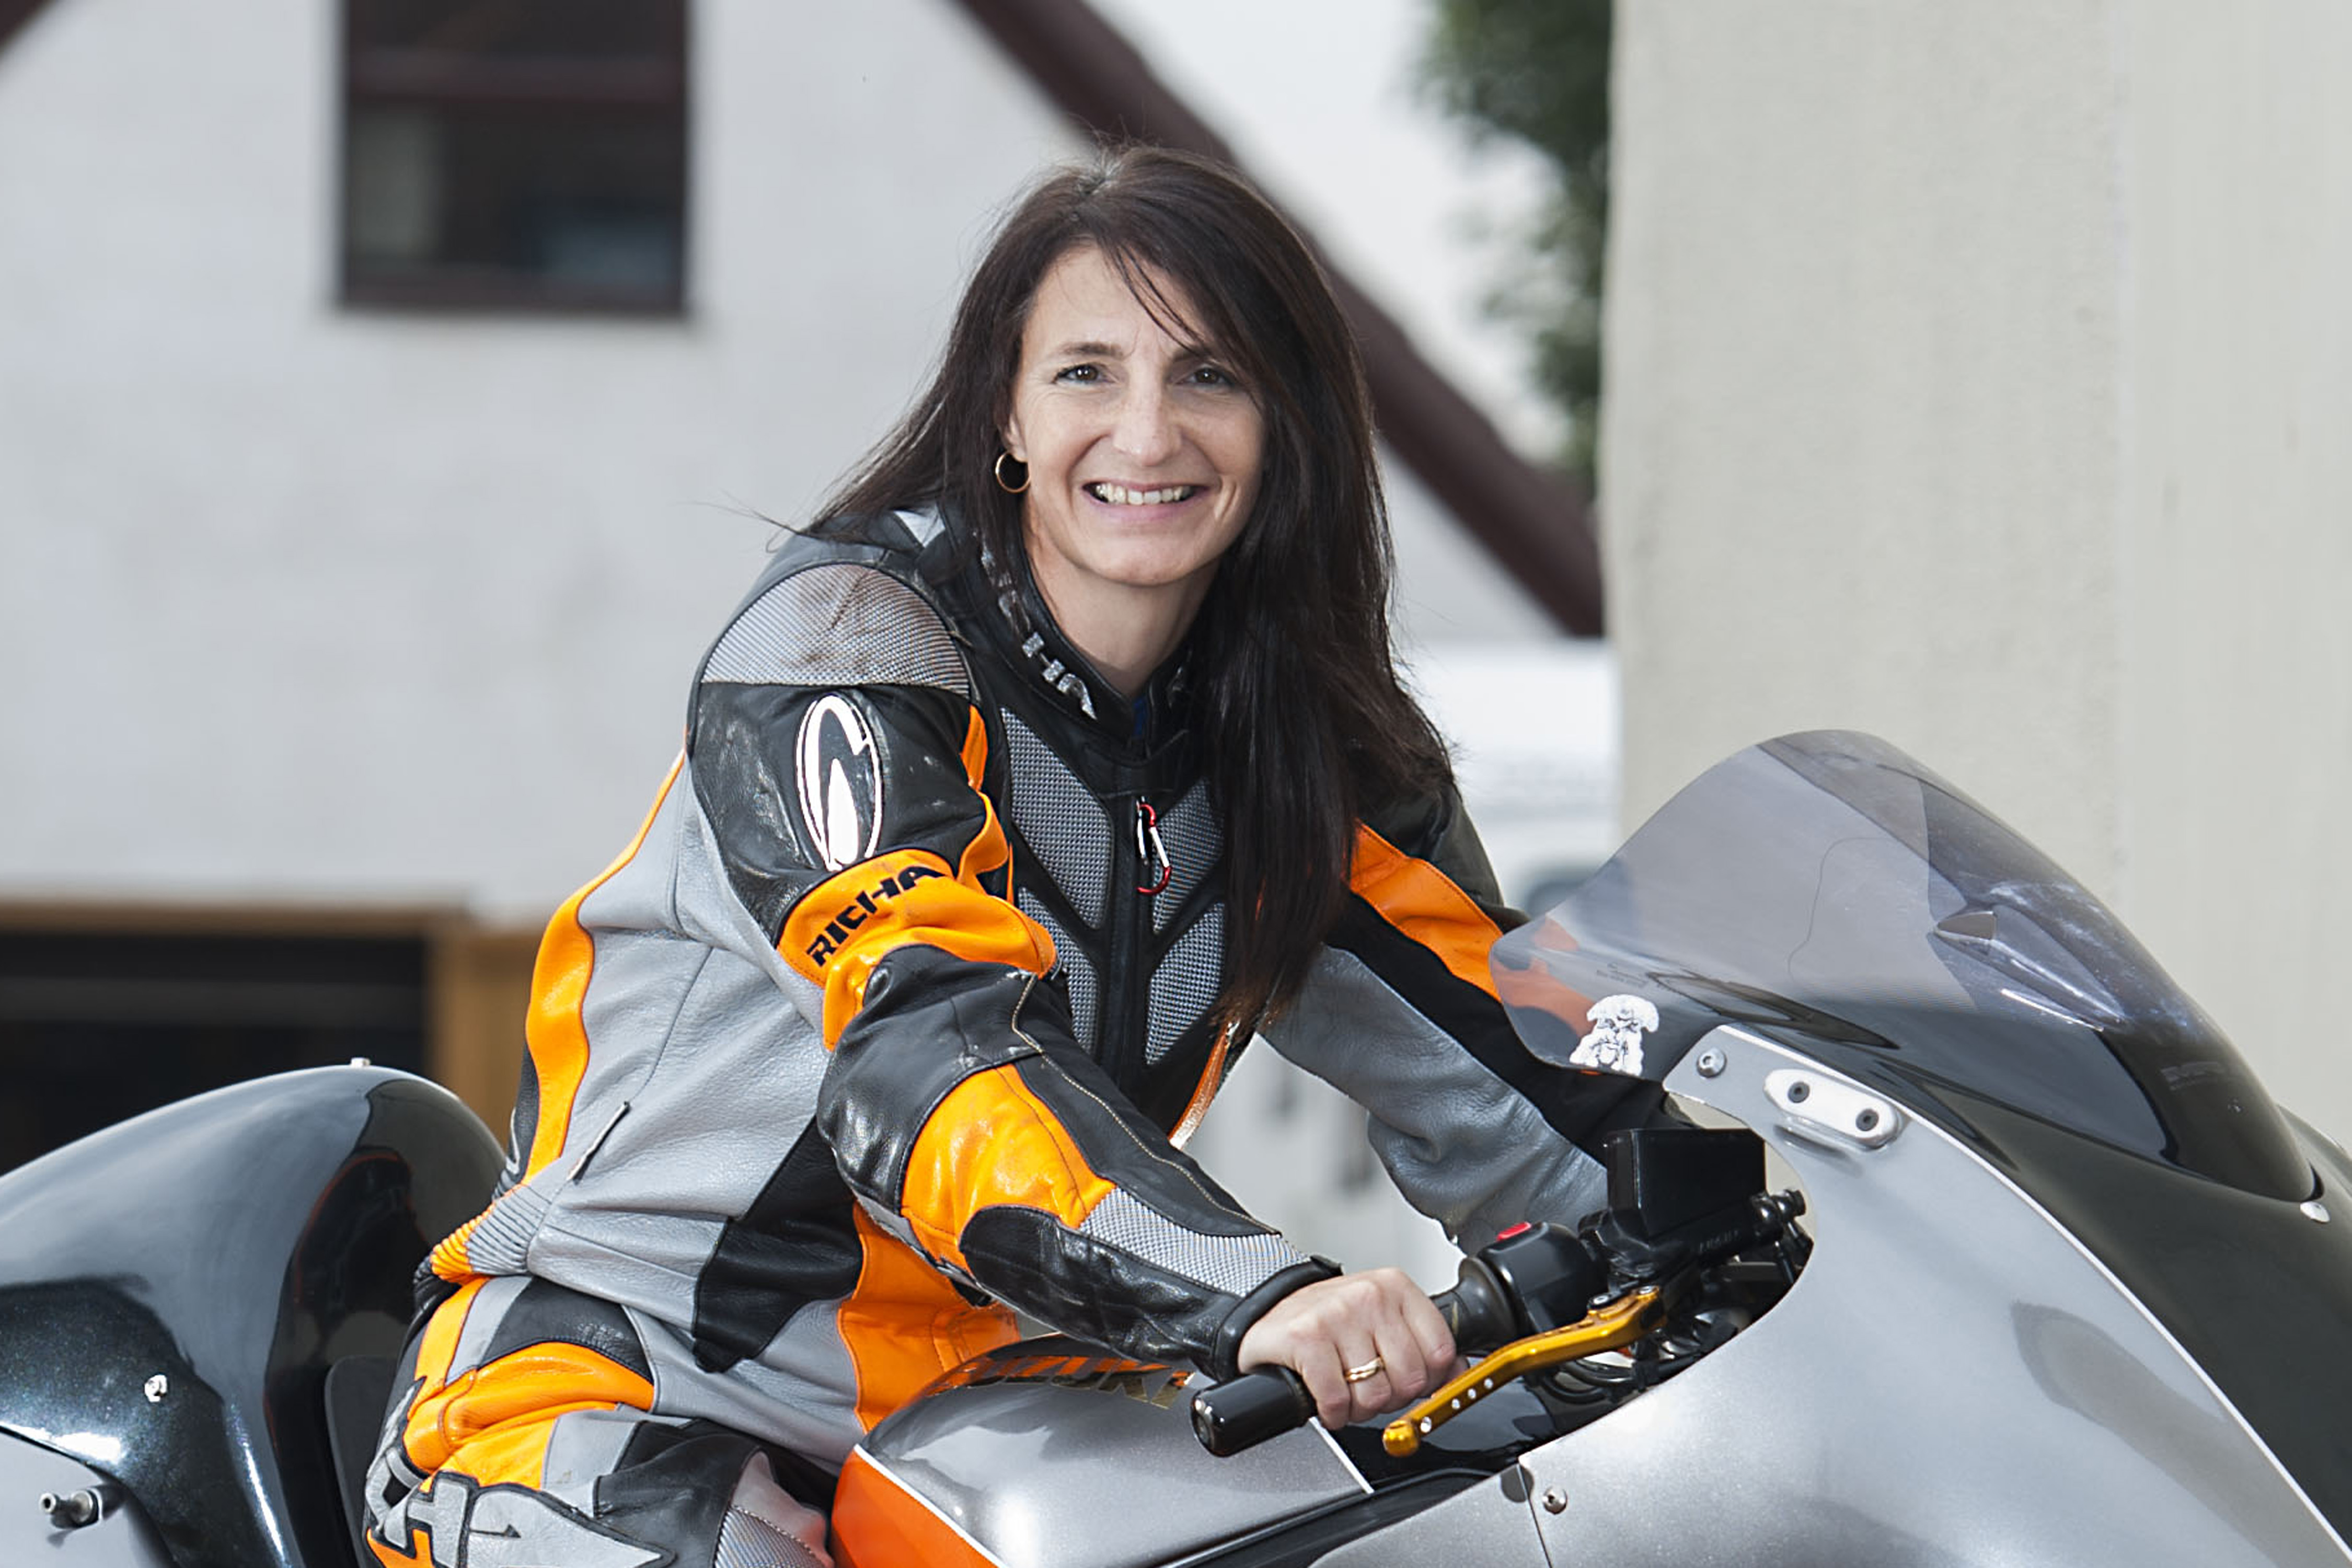 World's fastest woman crashes in record speed attempt